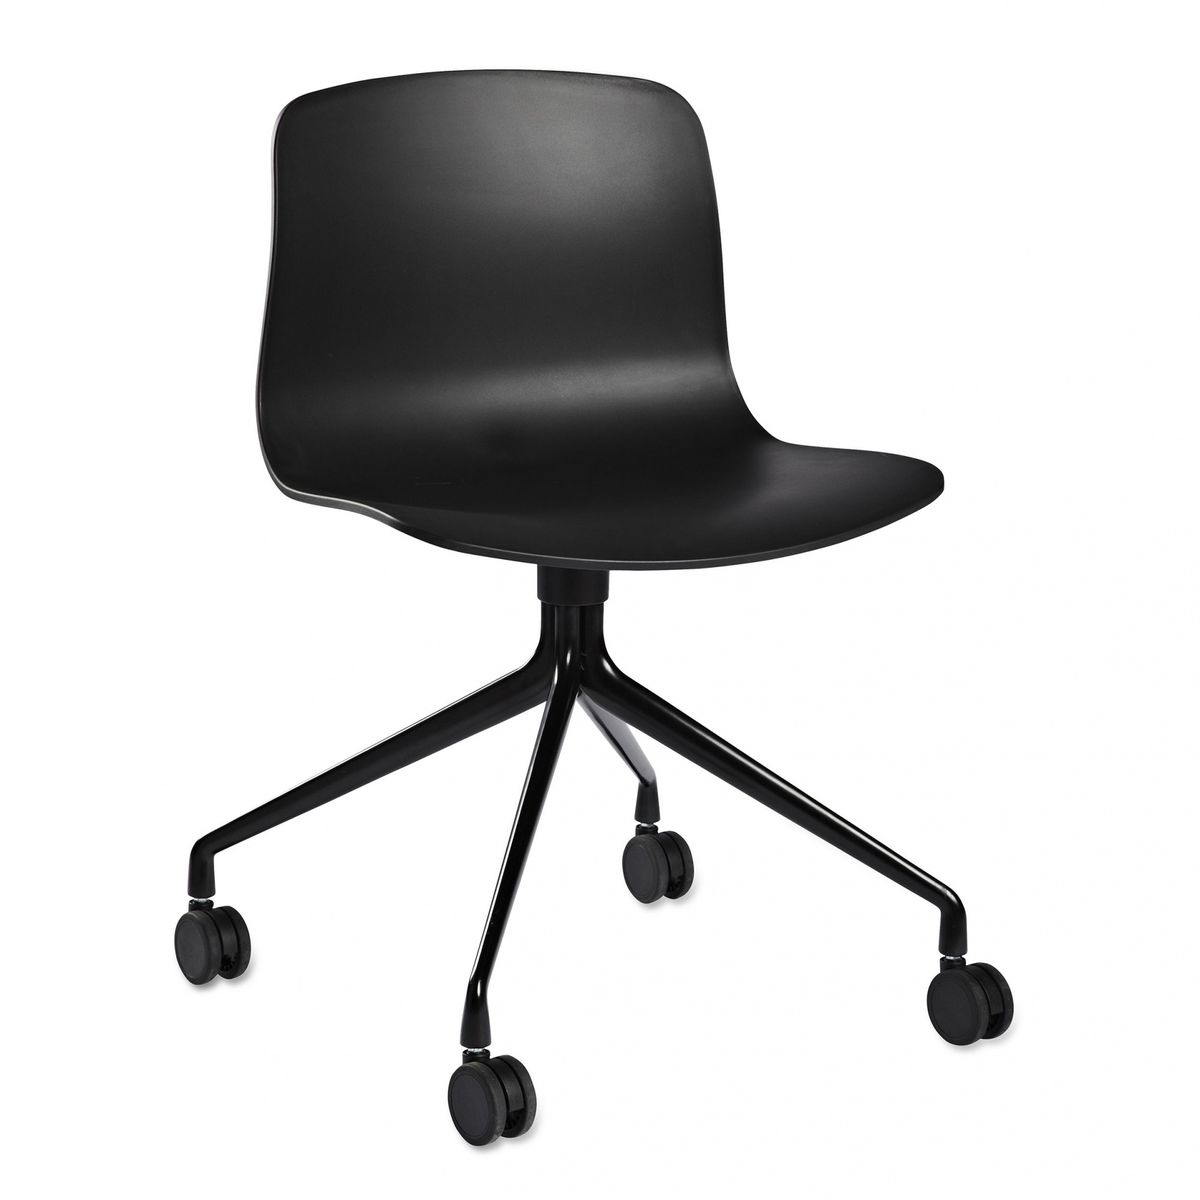 office chair with wheels. hay - about a chair 14 office with wheels black/frame powder coated i